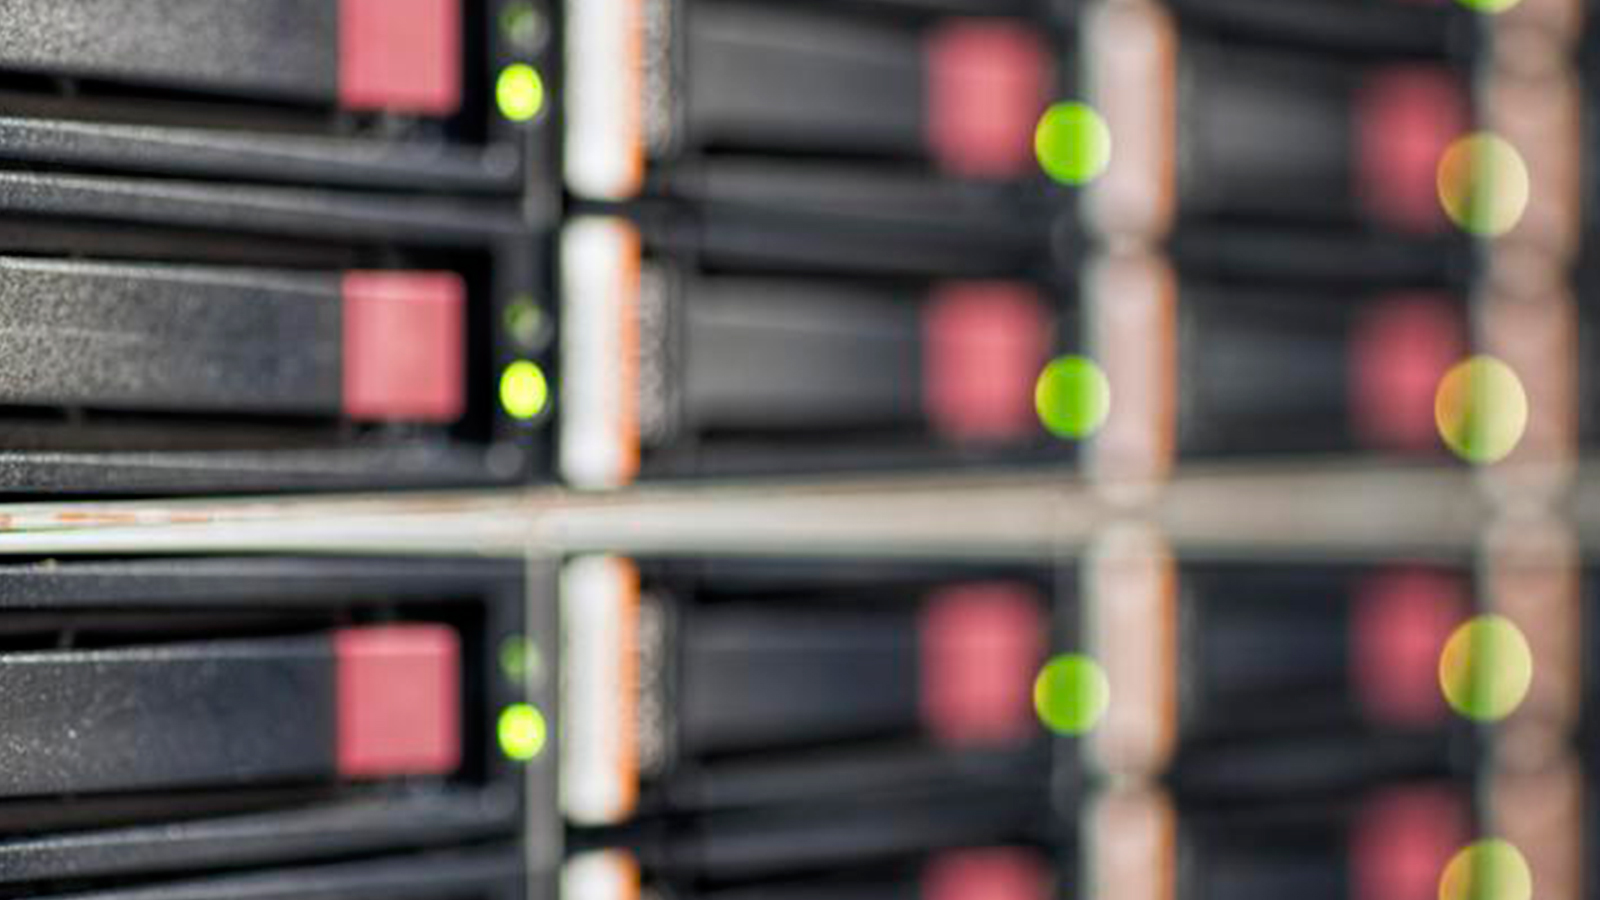 Closeup of an active server rack.